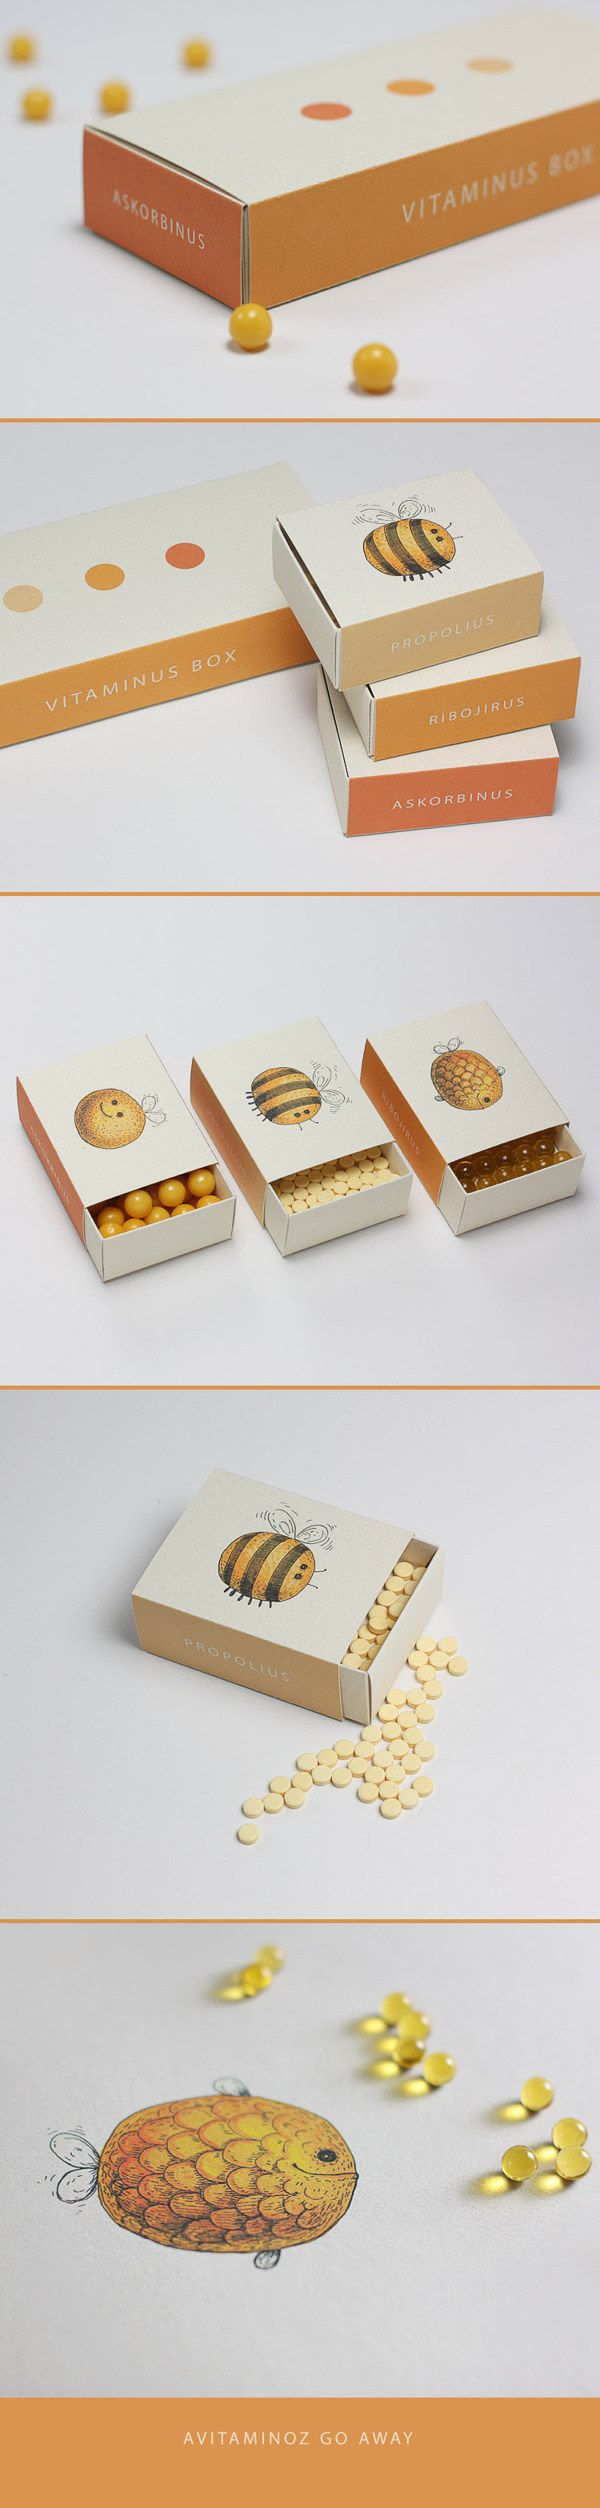 The cutest vitamin boxes imaginable.  (Home Decor Ideas)